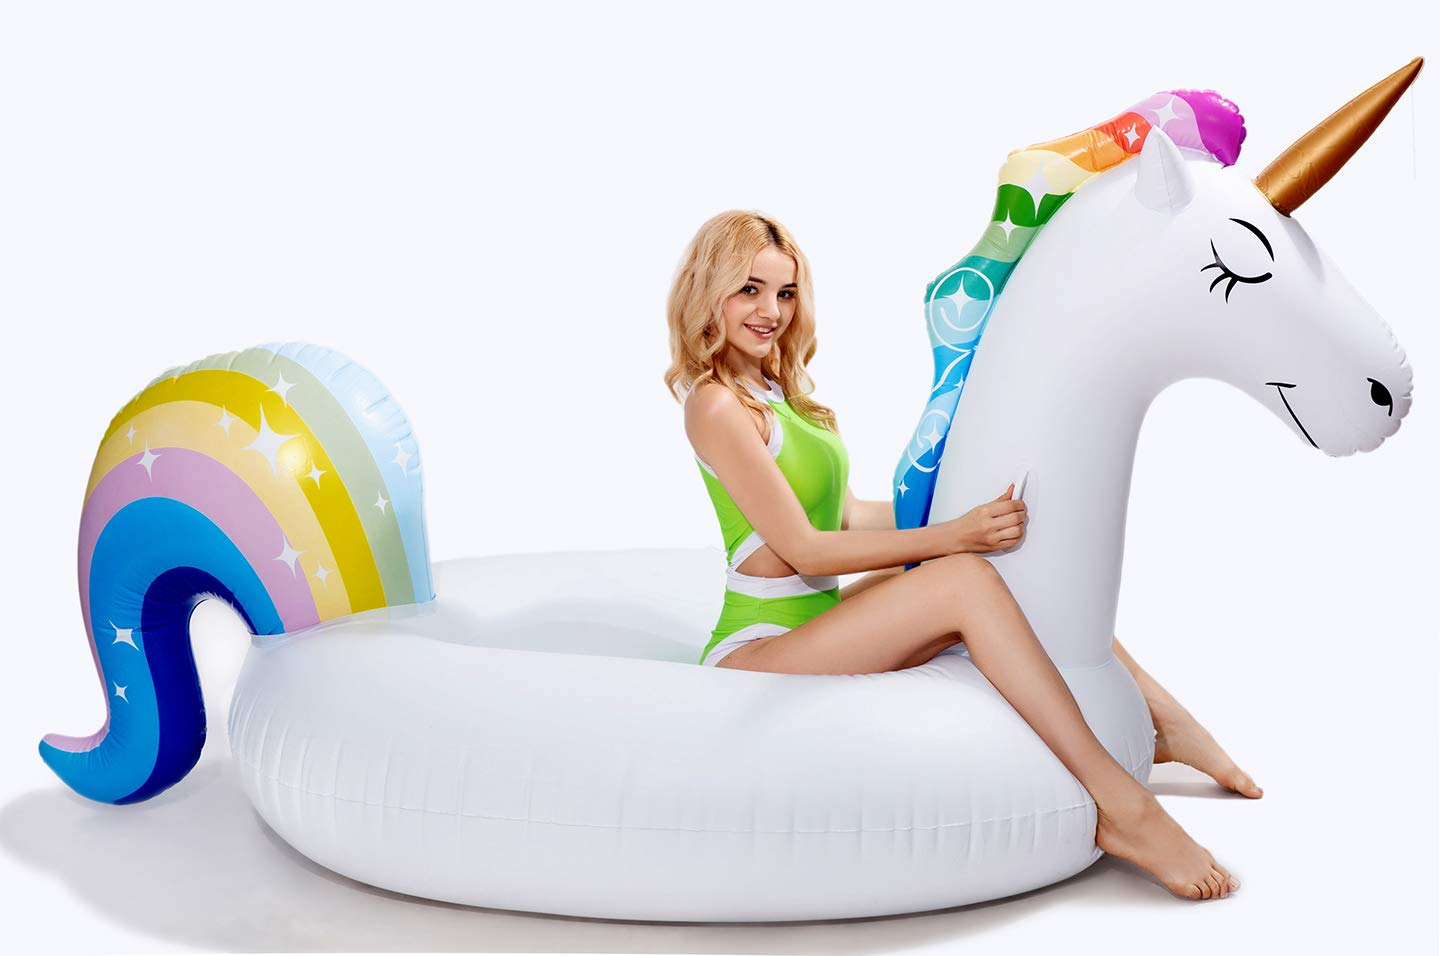 dreambuilderToy Giant Inflatable Unicorn Pool Float, 9 Feet Long , Unicorn Pool Float Floatie Ride On Large raft Summer Beach Pool Party Lounge for Kids and Adults (Unicorn Float) by dreambuilderToy